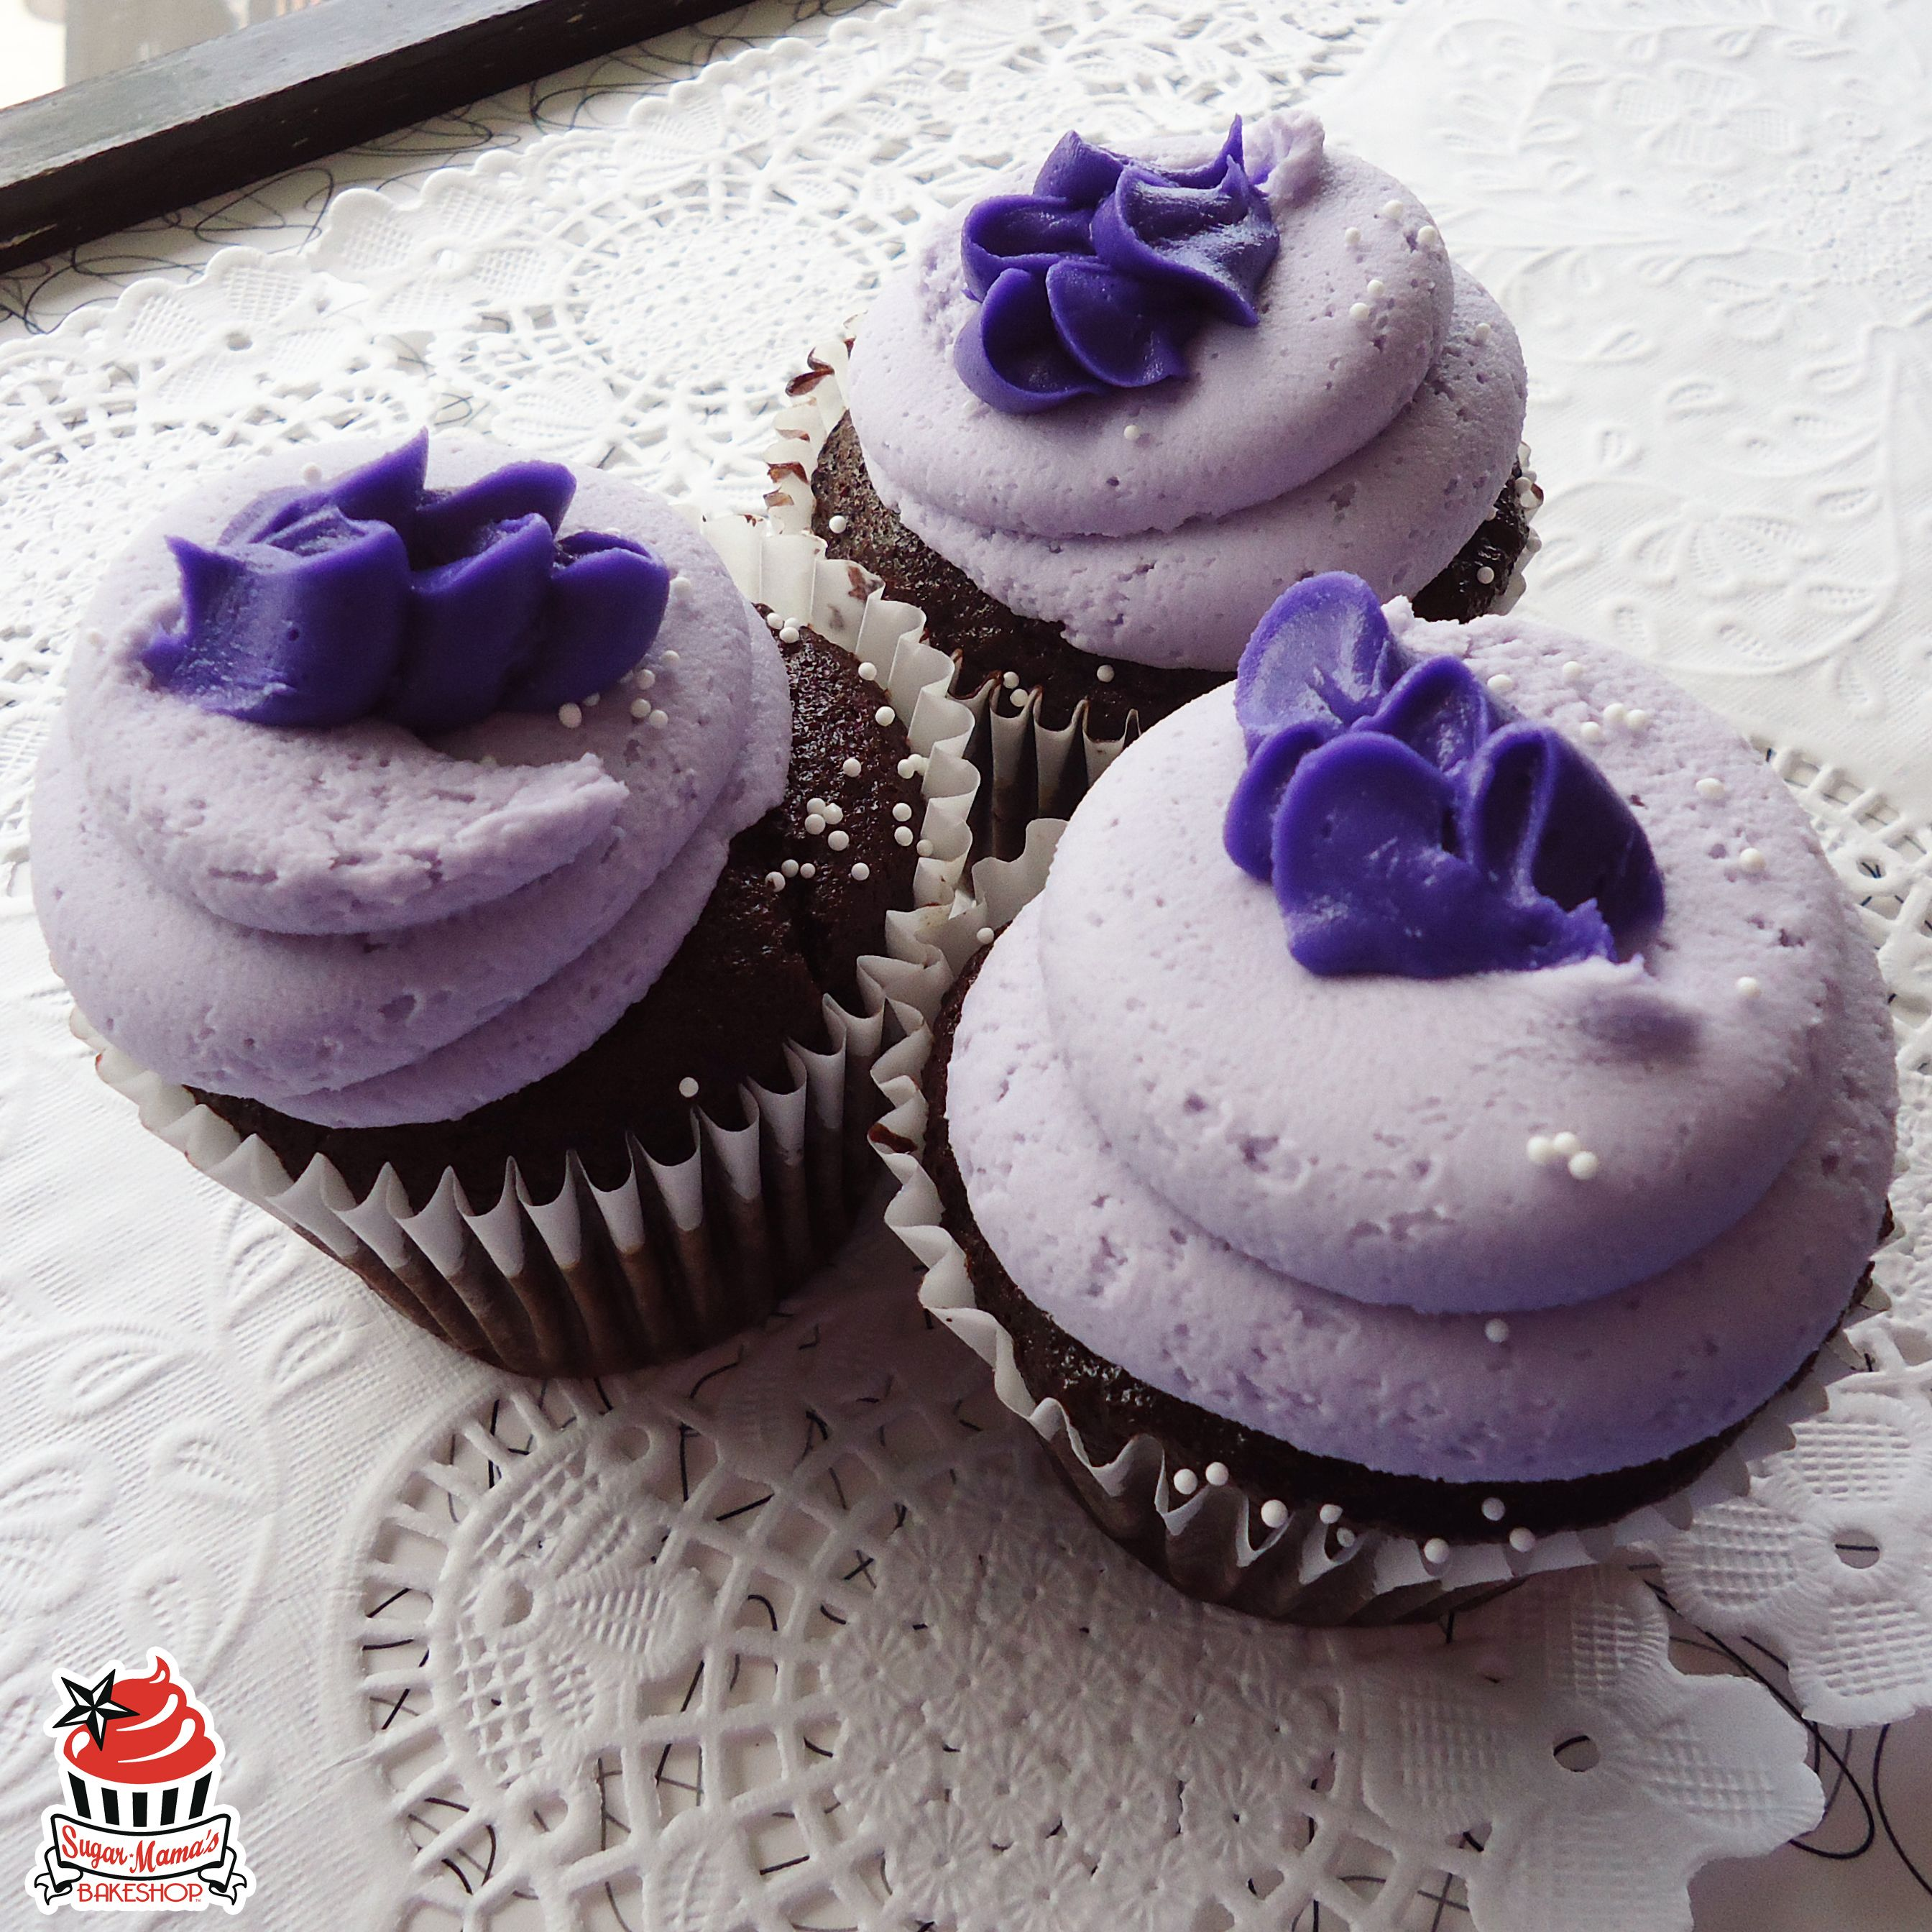 May Special, Mama Loves You: rich and moist chocolate cake topped with lovely lavender buttercream and topped with an iced lavender flower.